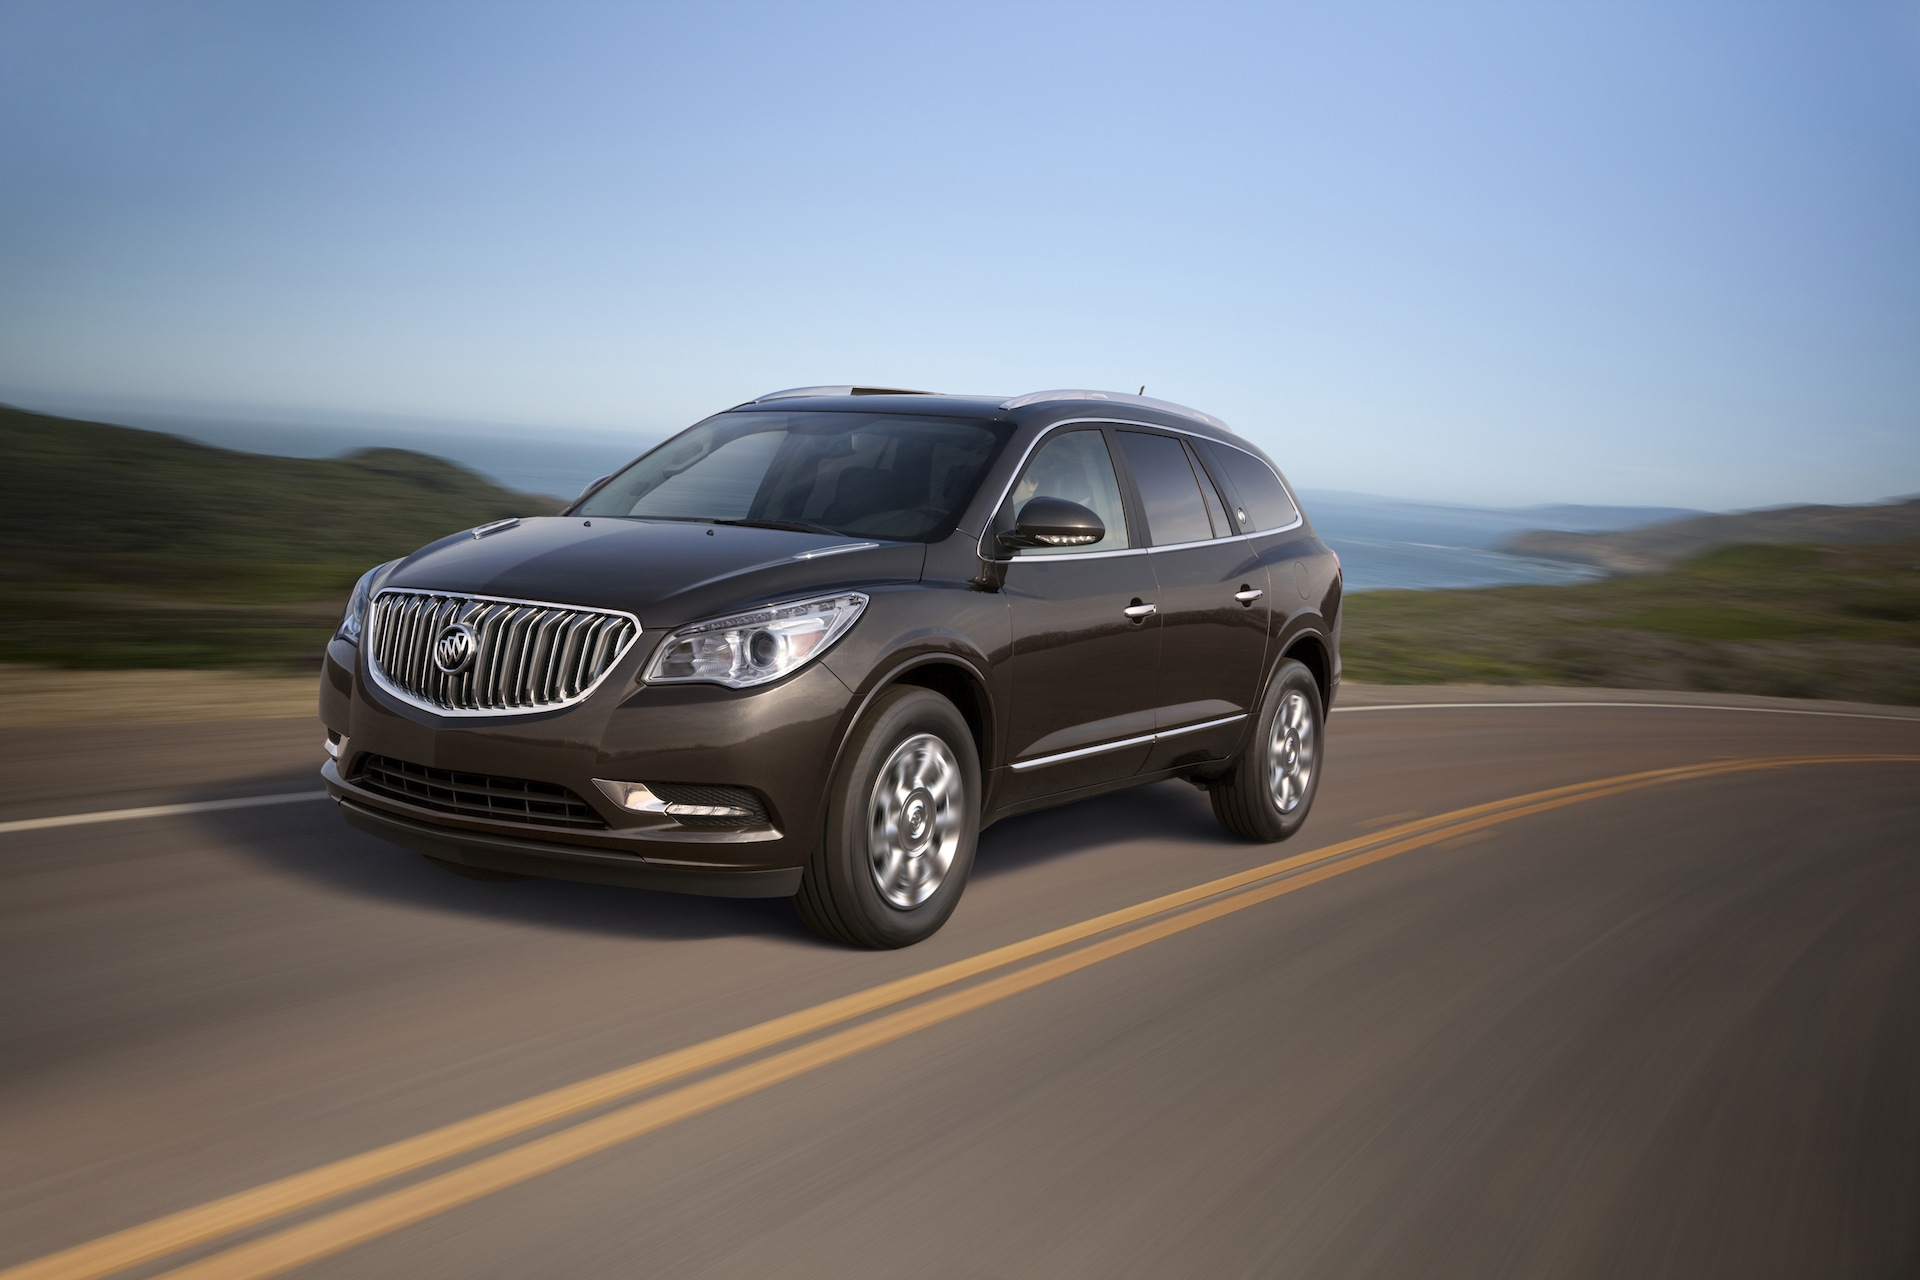 2014 Buick Enclave Review